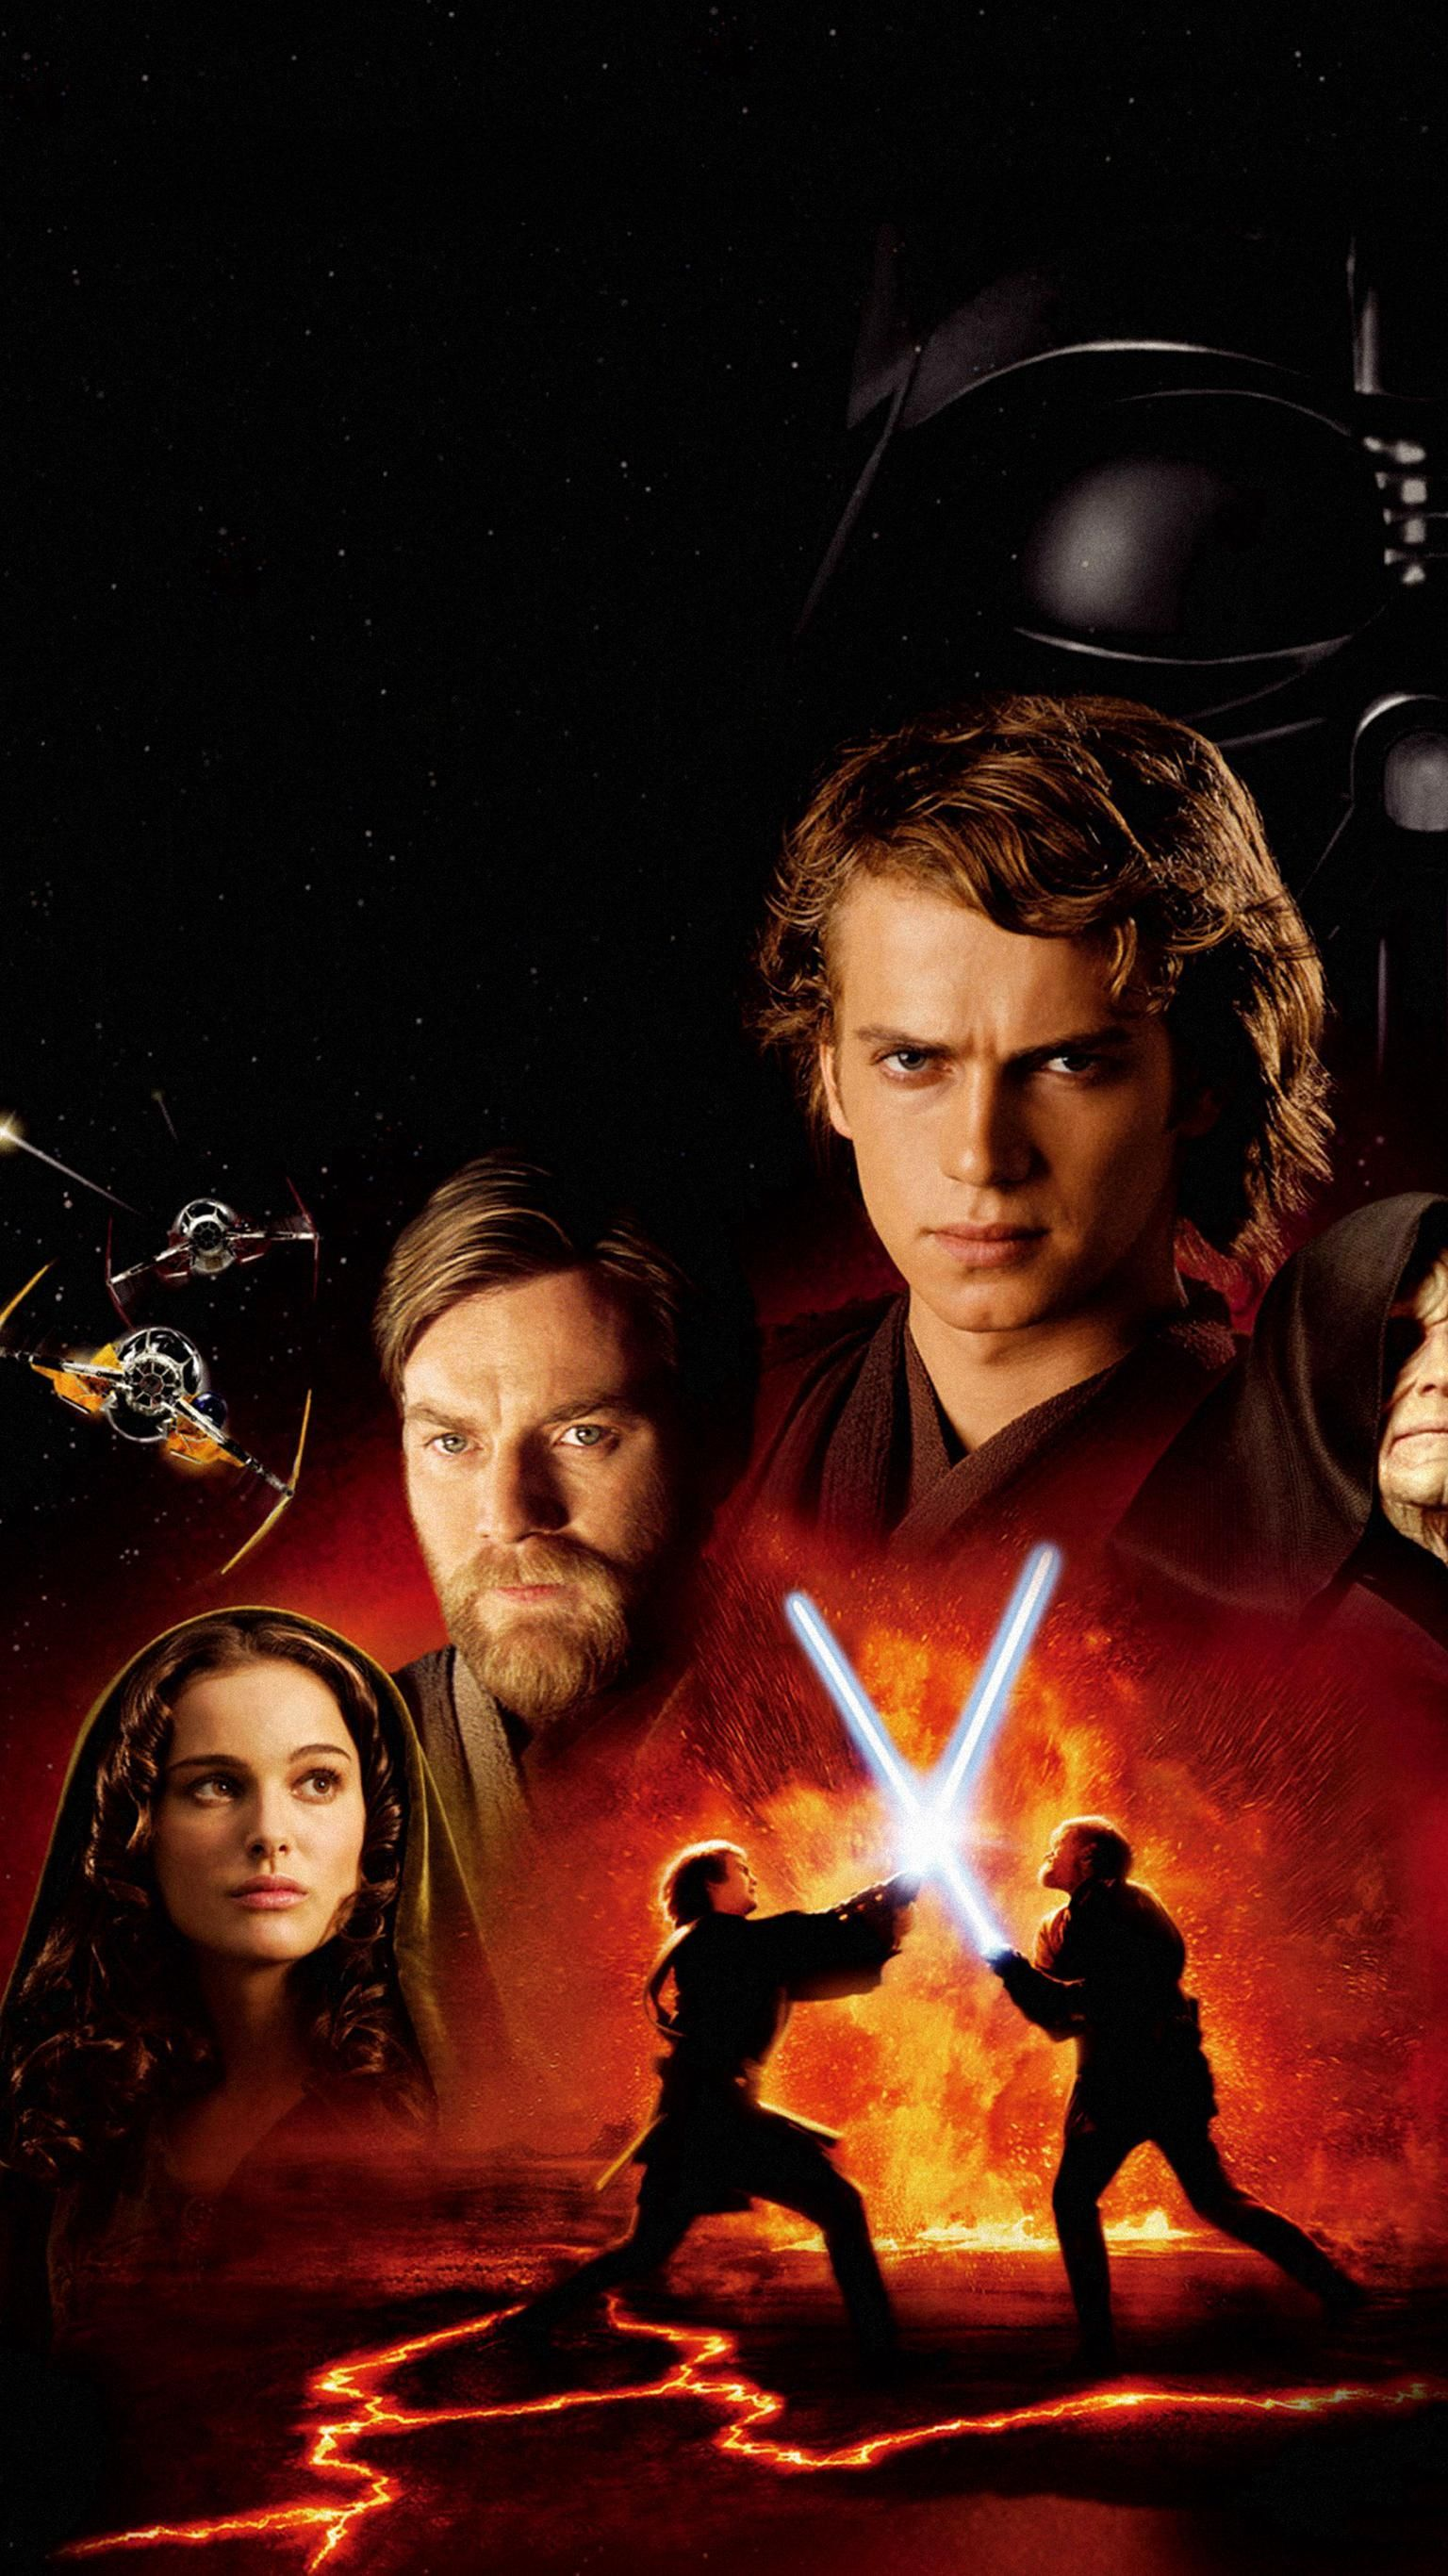 Star Wars Episode Iii Revenge Of The Sith 2005 Phone Wallpaper In 2020 Star Wars Images Star Wars Pictures Star Wars Poster